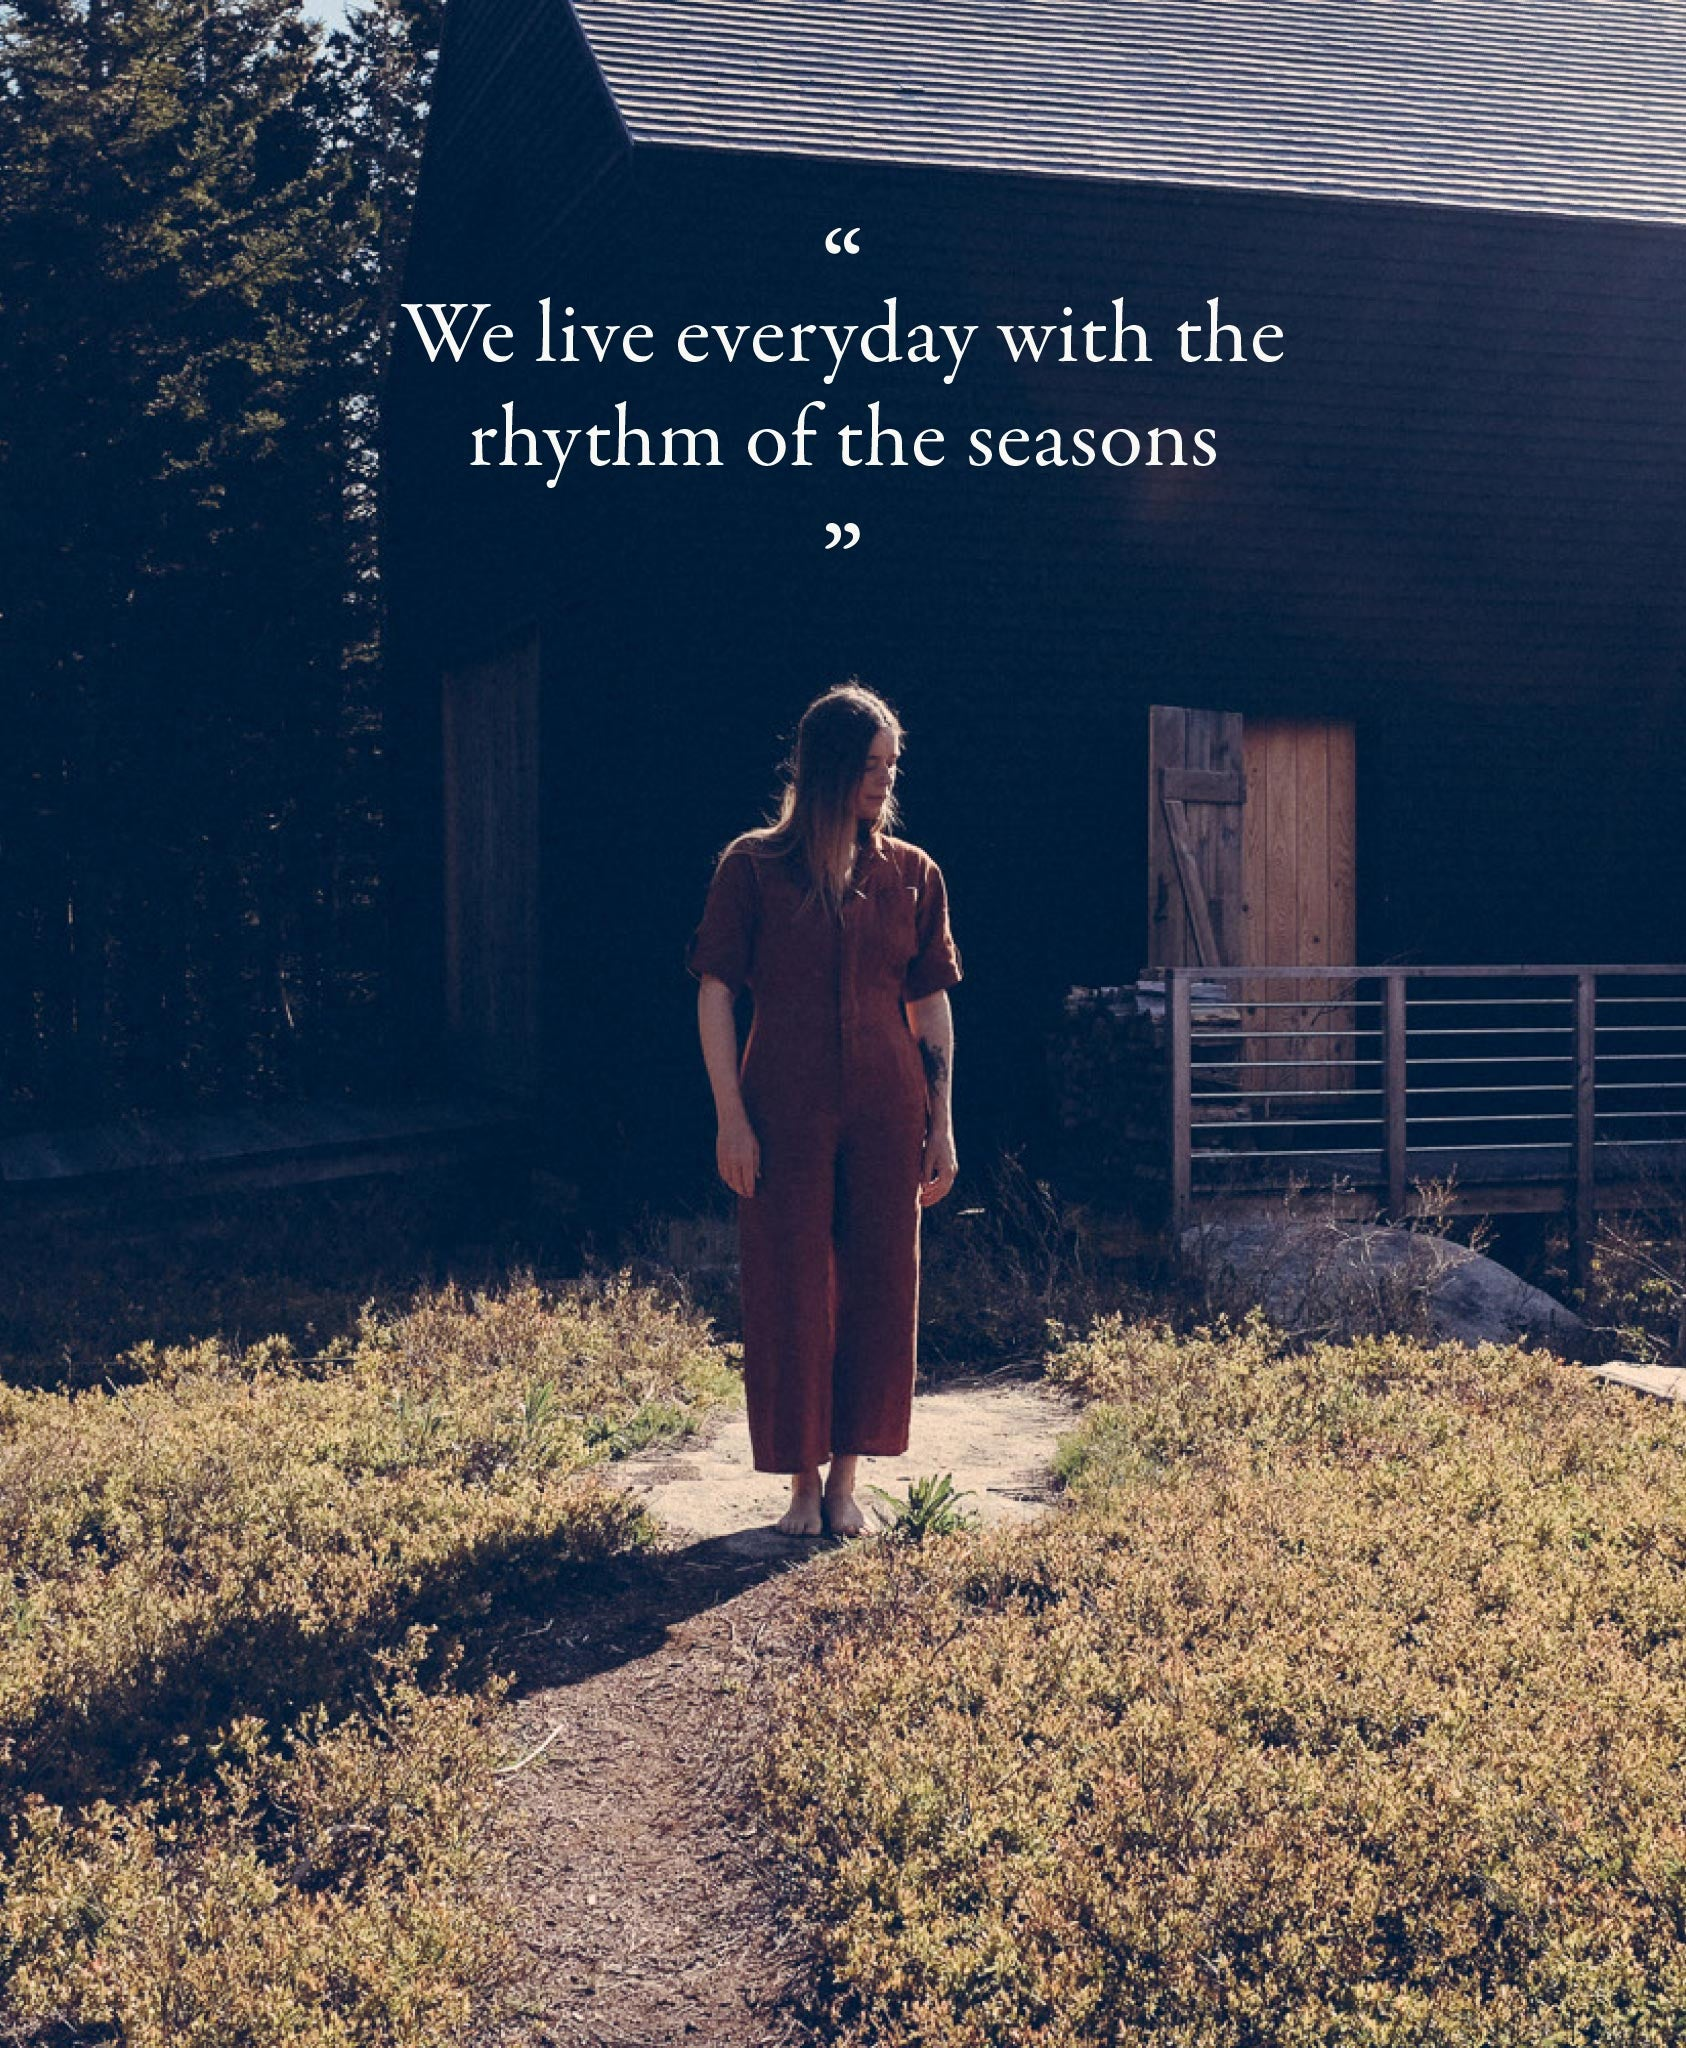 We live everyday with the rhythm of the seasons